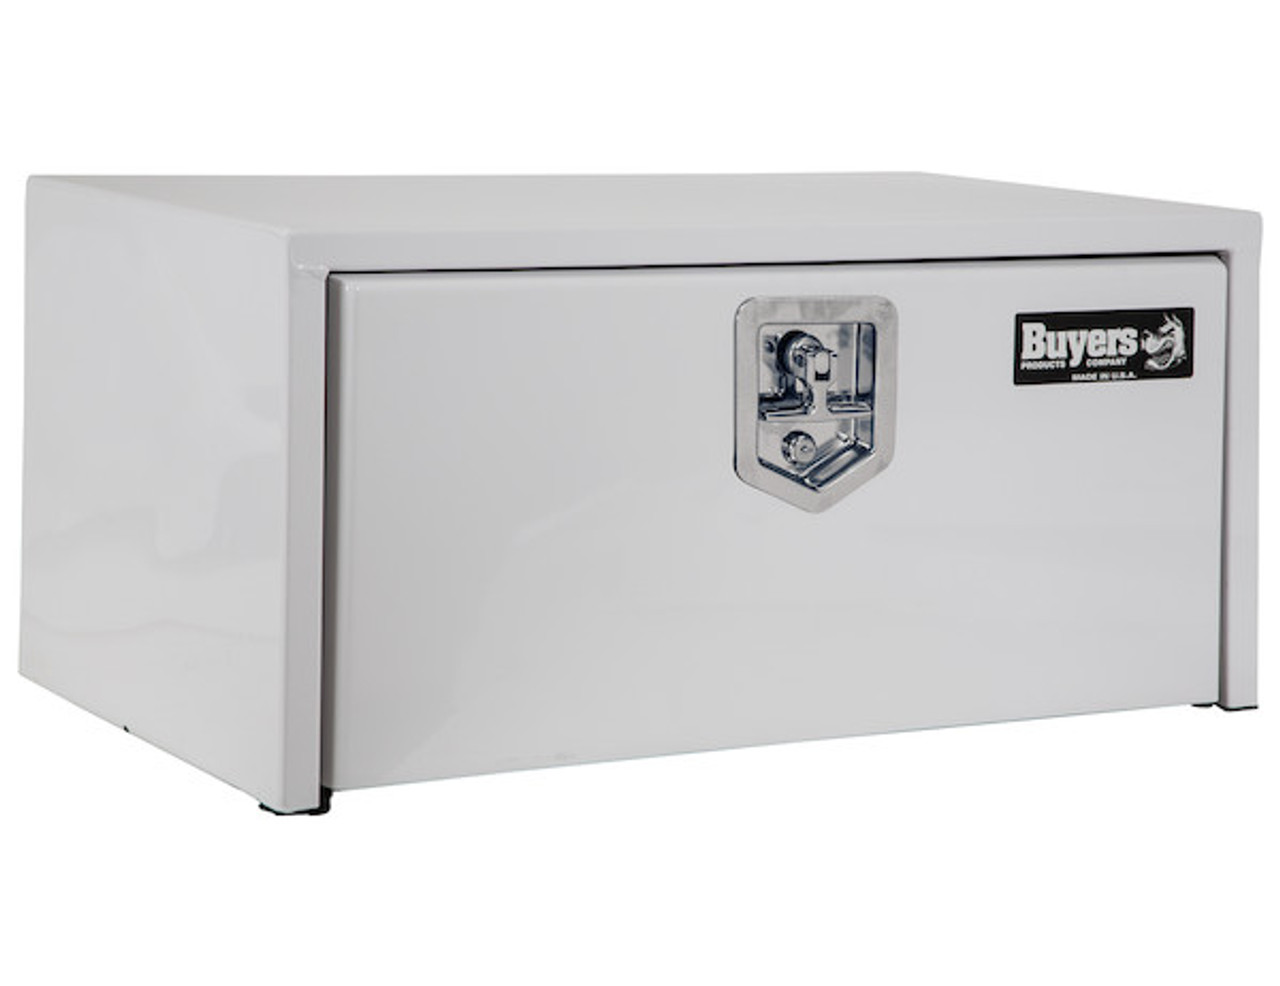 """1703404 BUYERS PRODUCTS WHITE STEEL UNDERBODY TRUCK TOOLBOX WITH BUILT-IN SHELF 14""""HX16""""DX30""""W Picture # 1"""